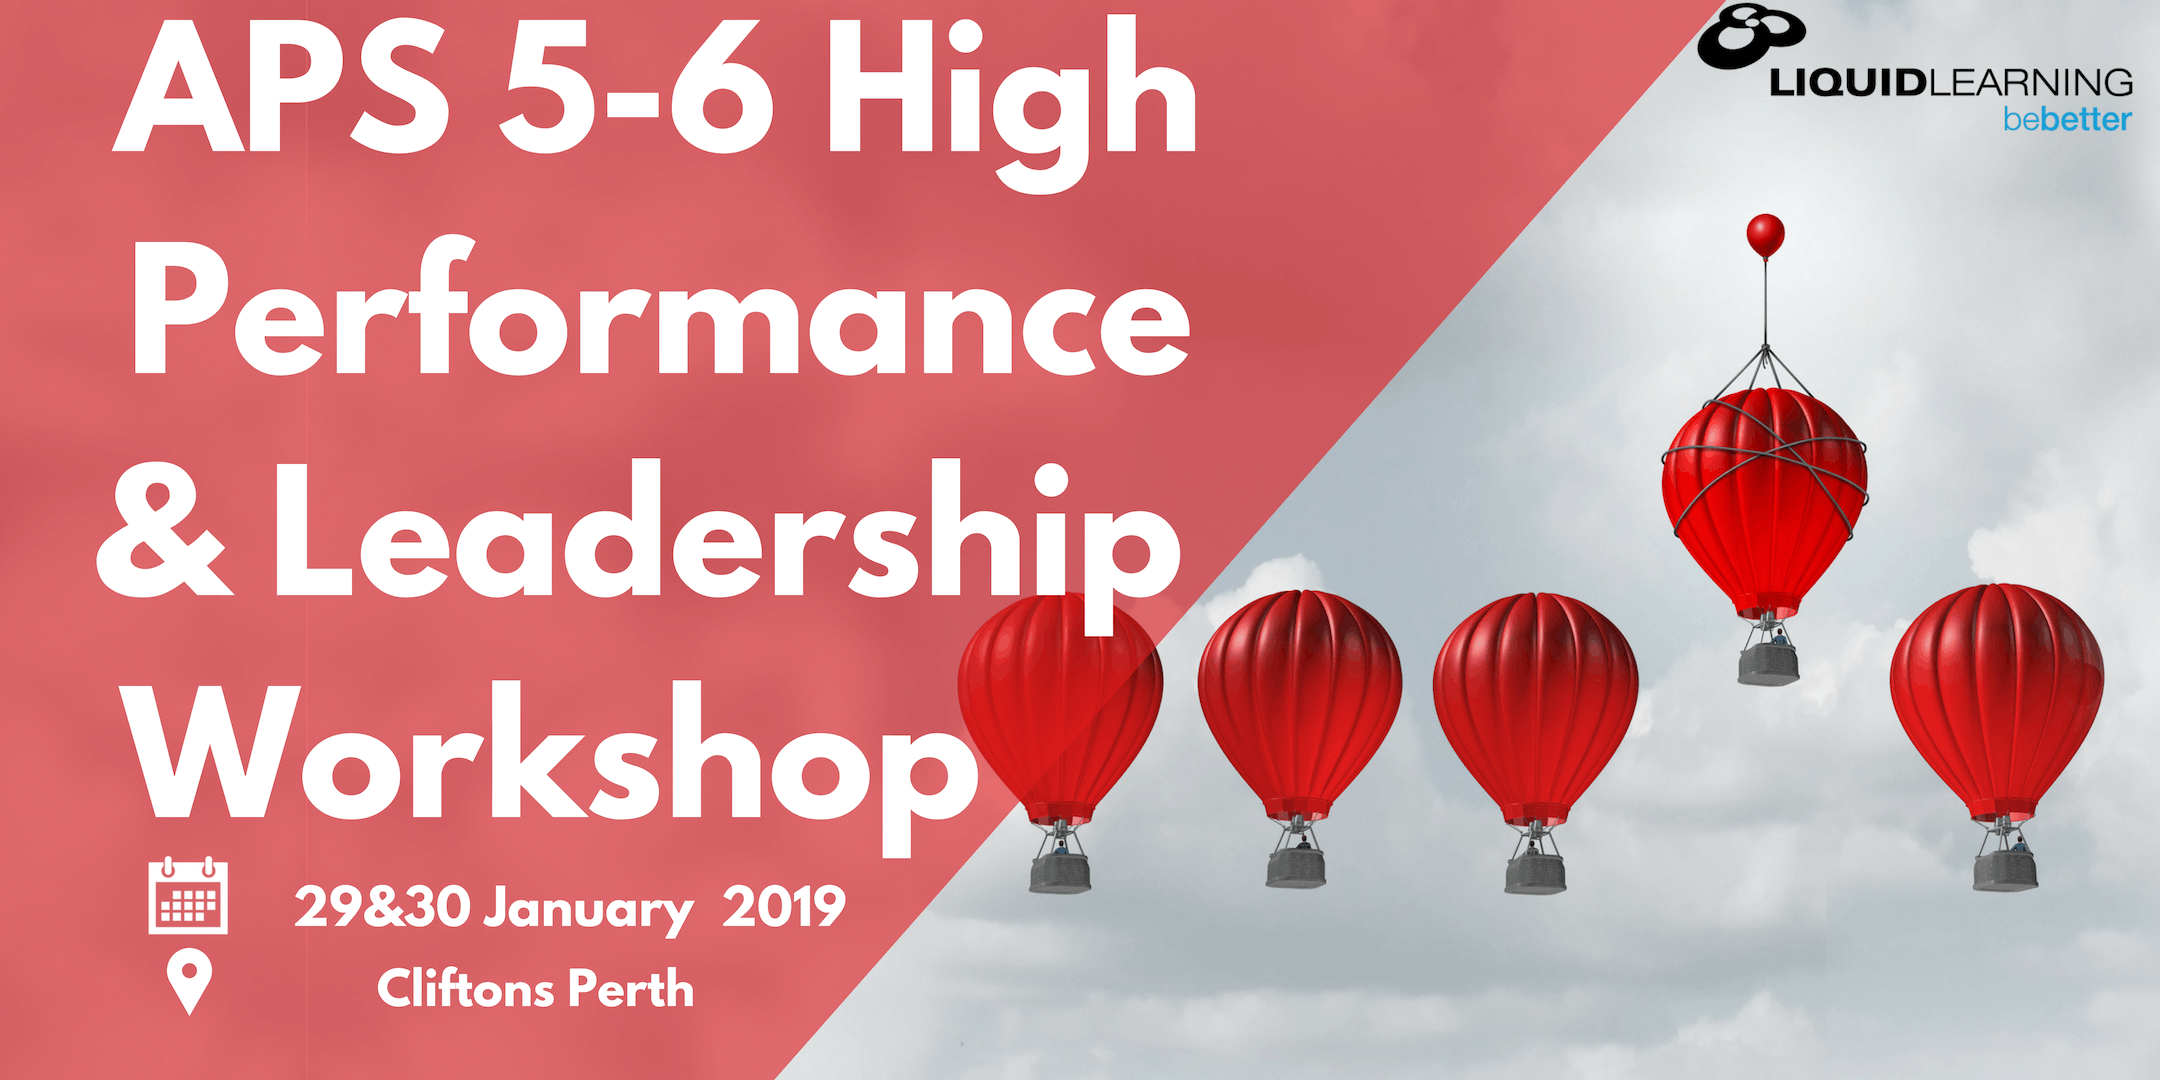 APS 5-6 High Performance & Leadership Worksho